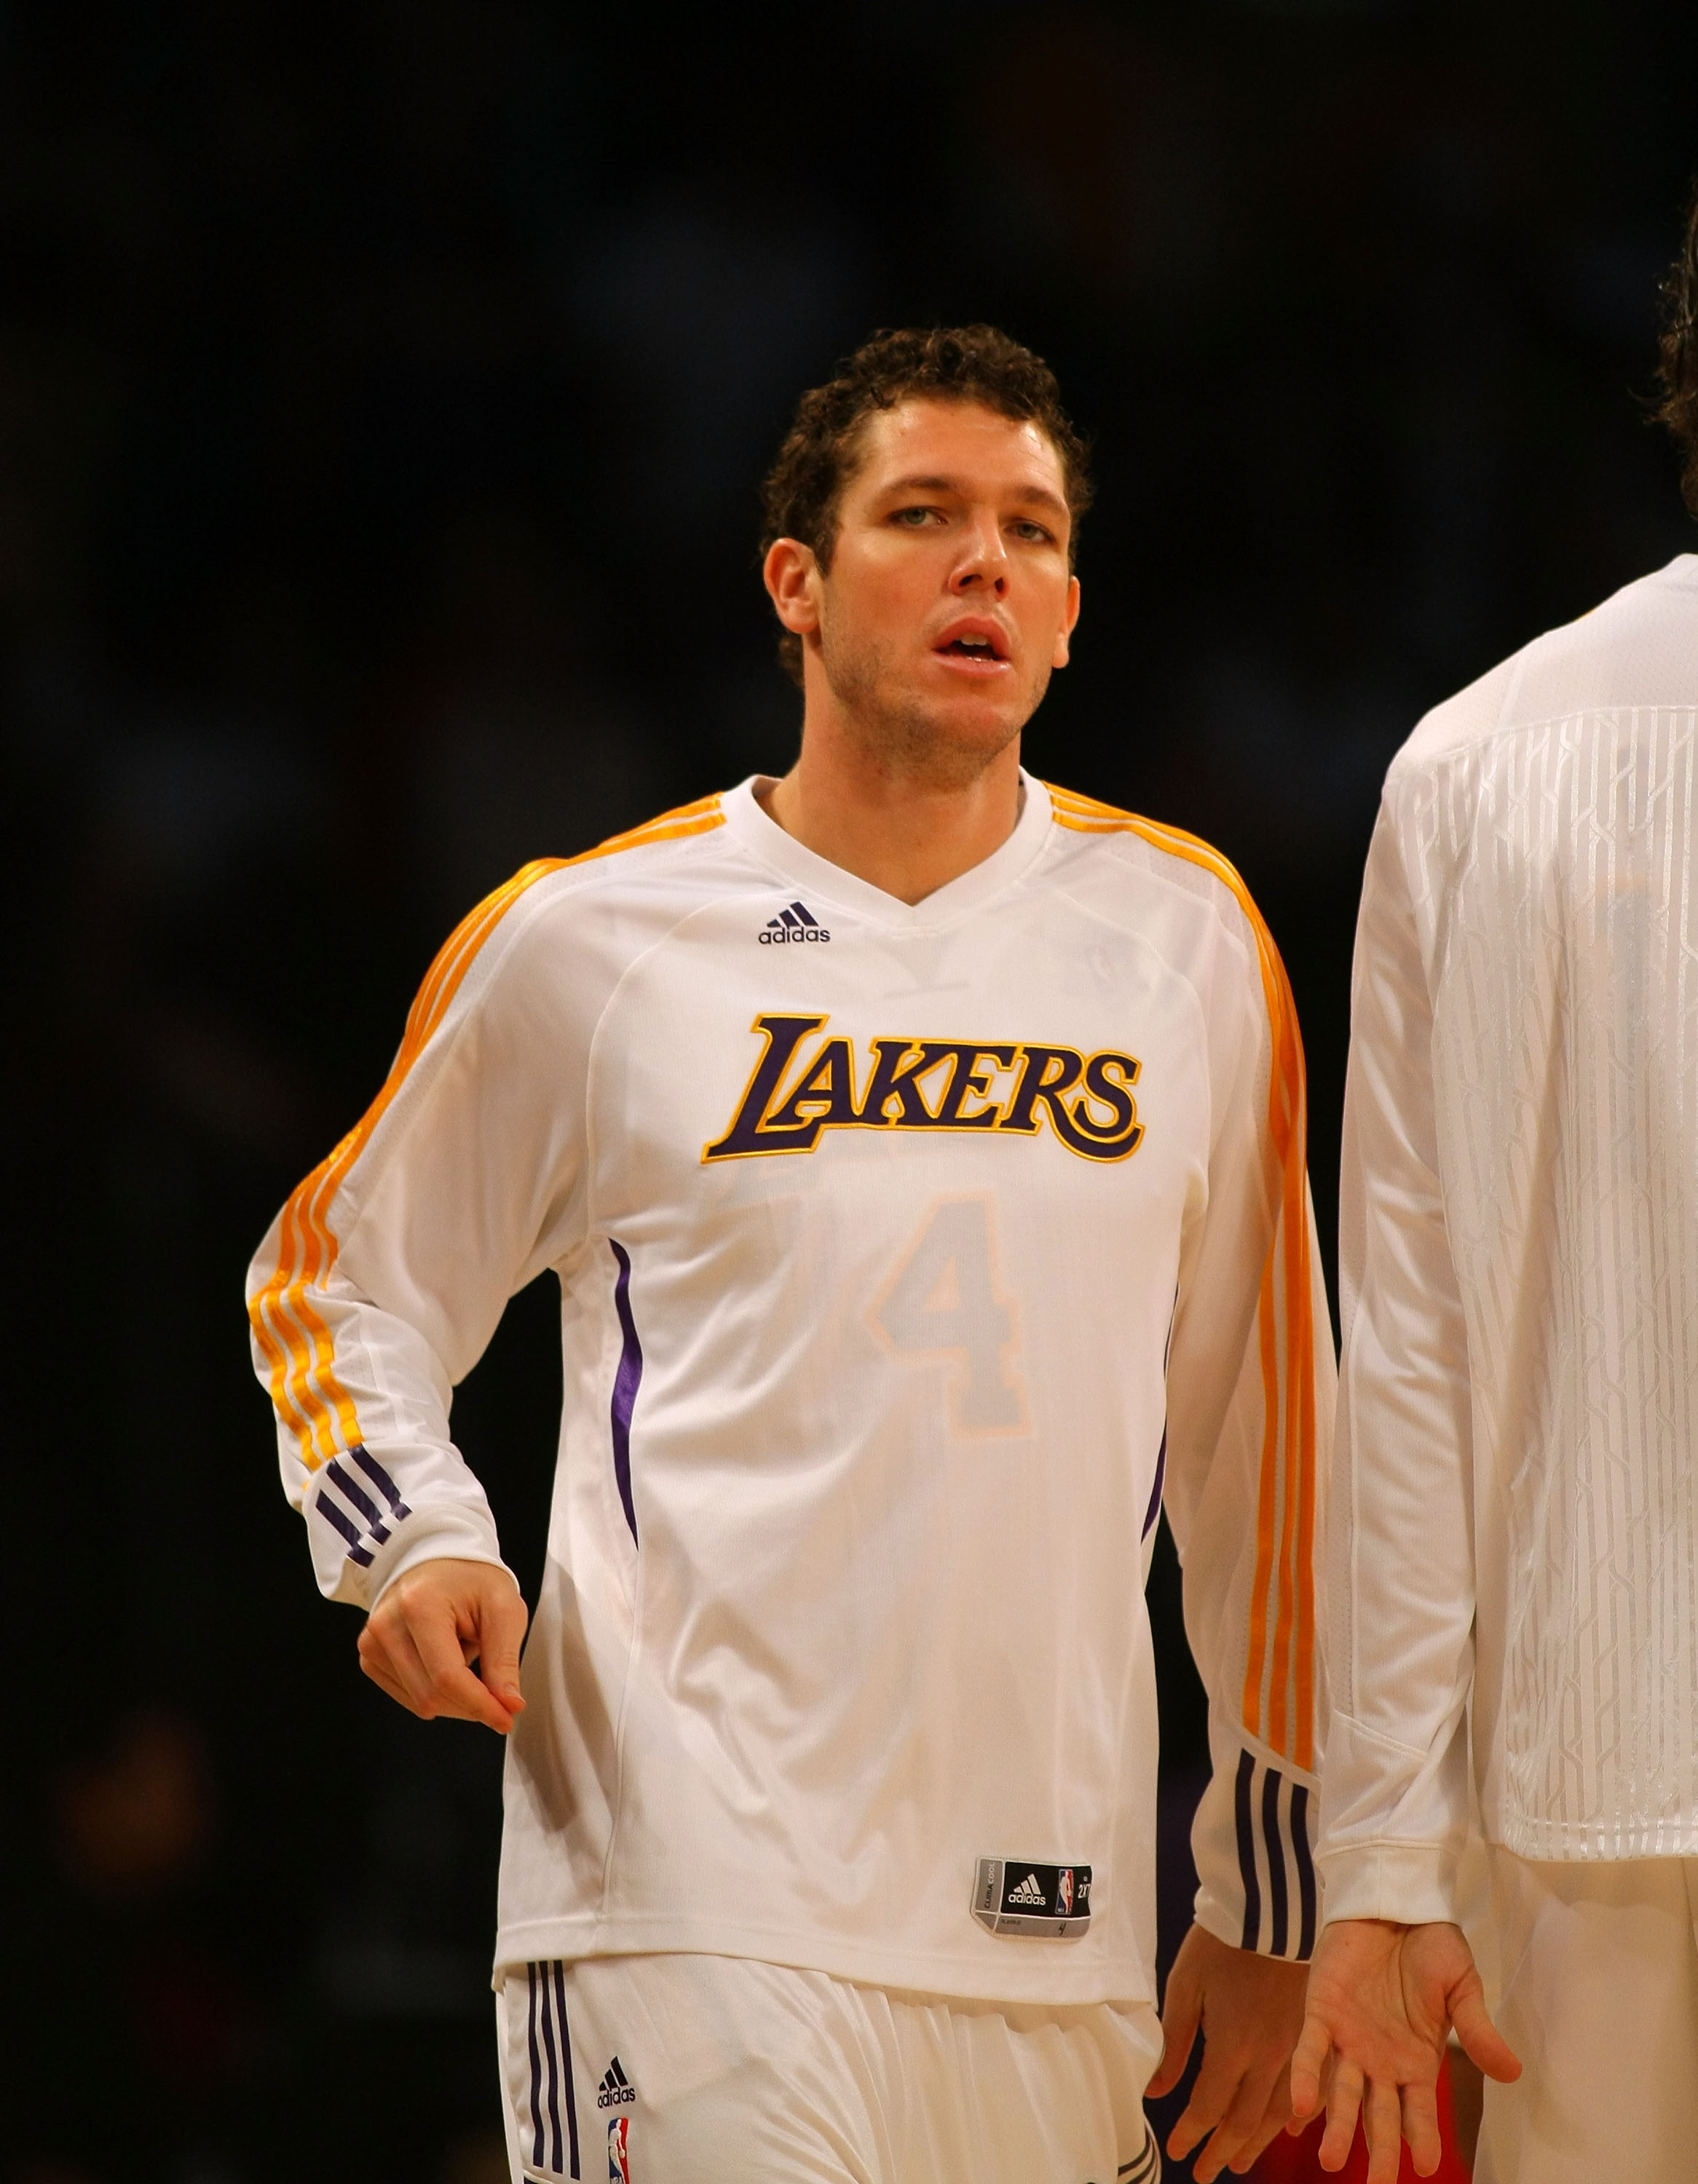 LOS ANGELES, CA - DECEMBER 25:  Luke Walton #4 of the Los Angeles Lakers warms up prior to their NBA game against the Miami Heat at Staples Center on December 25, 2010 in Los Angeles, California. The Heat defeated the Lakers 96-80. NOTE TO USER: User expr